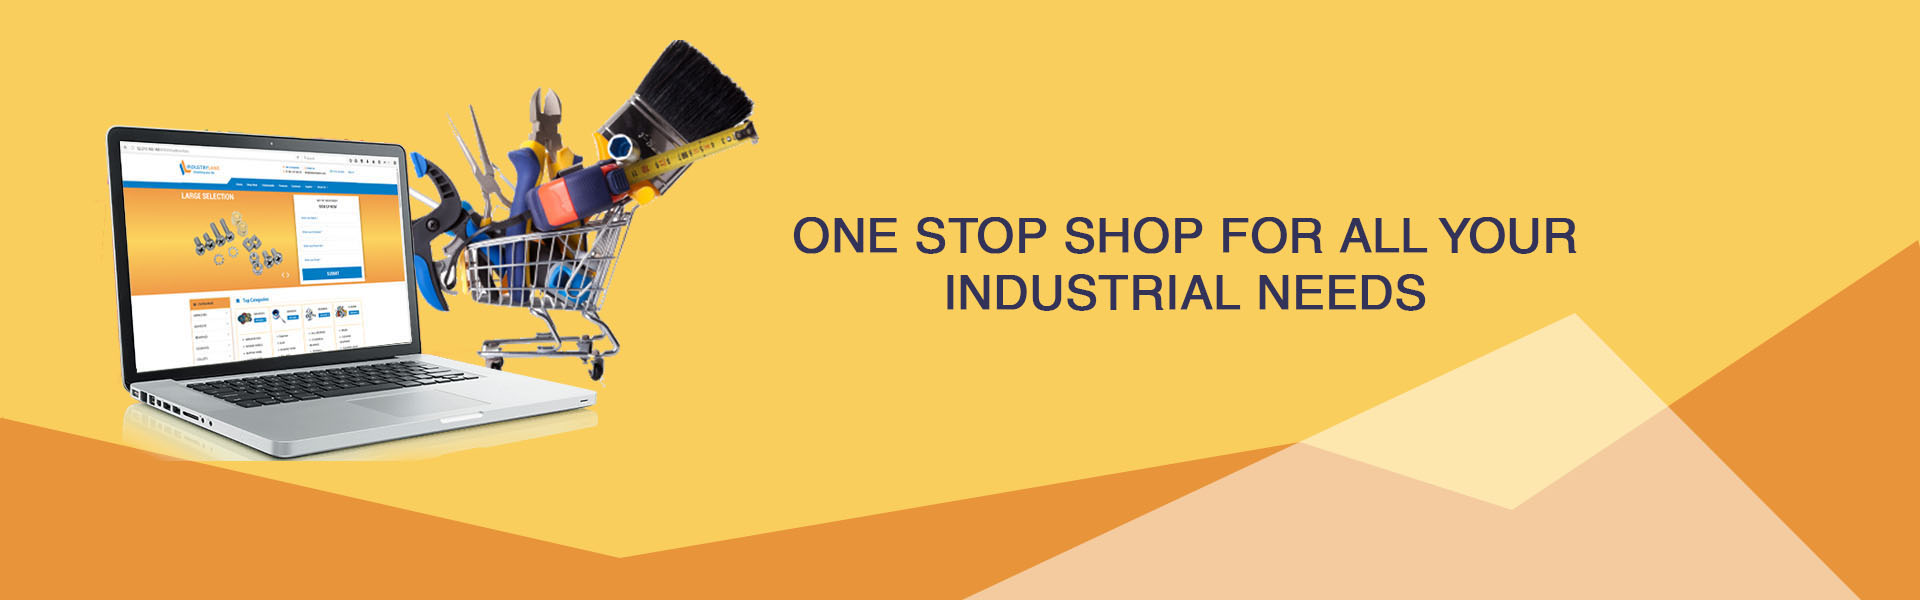 One Stop Shop for all your Industrial needs